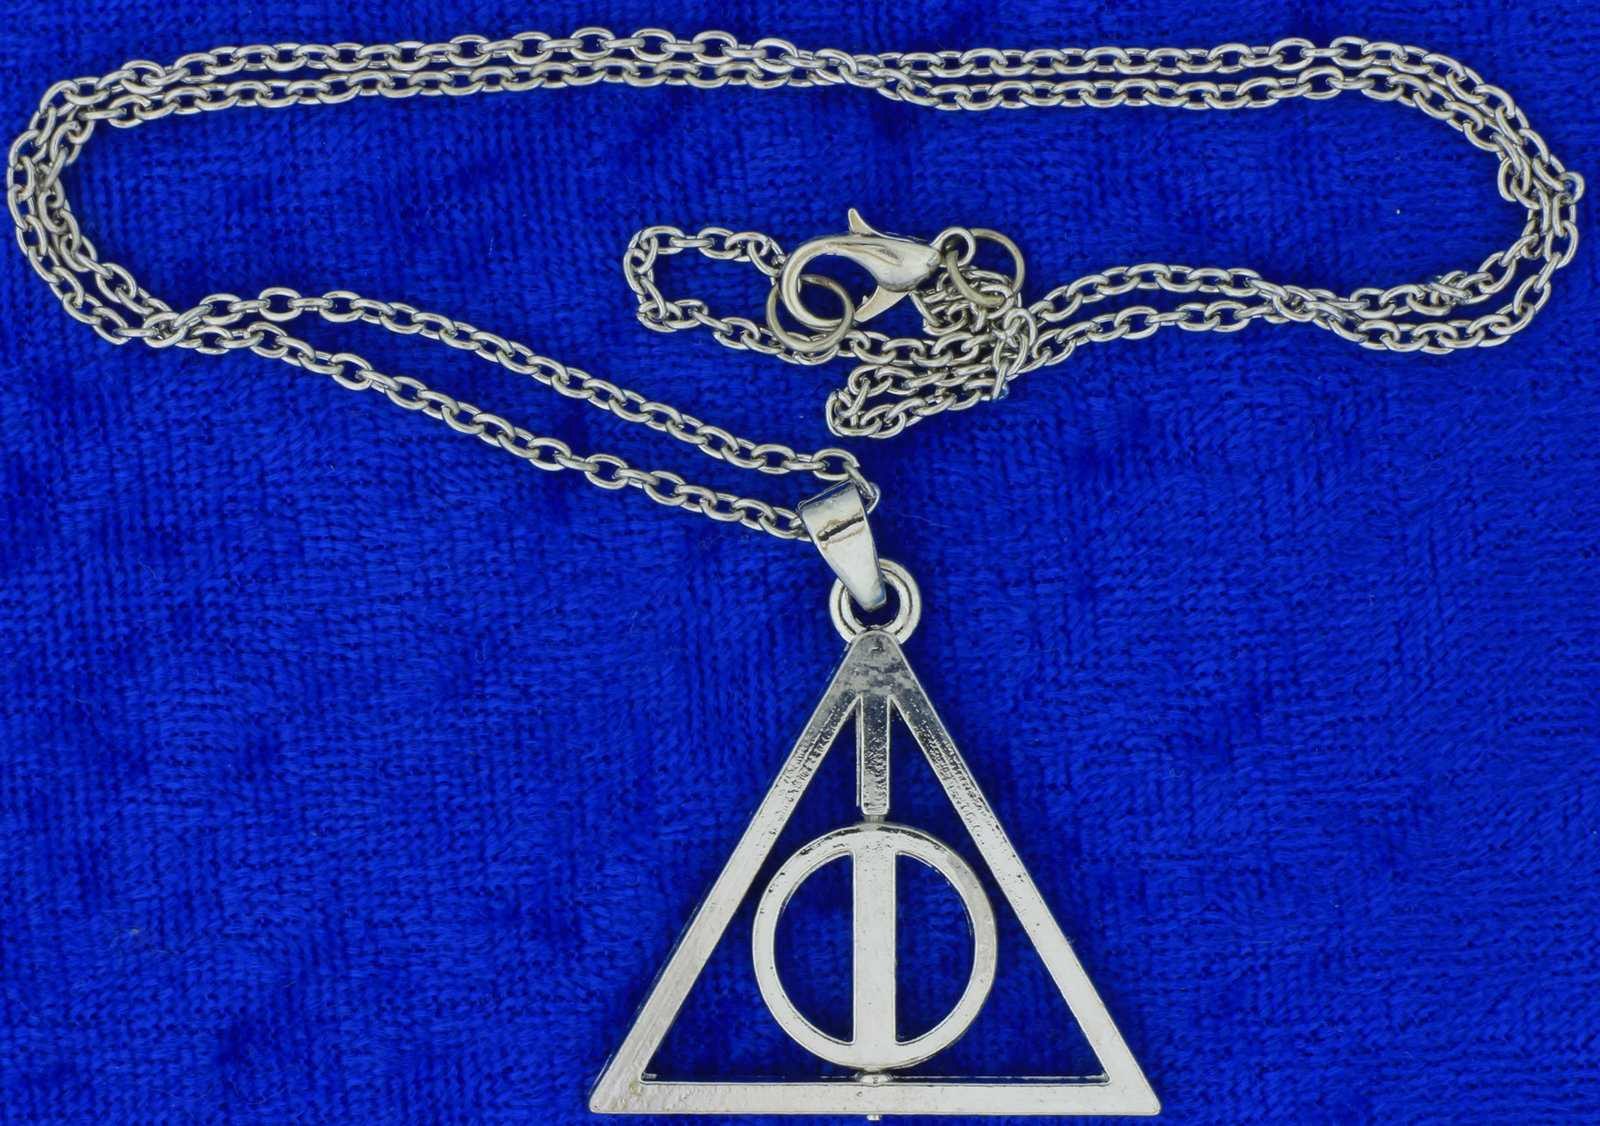 Deathly hallows spinning necklace